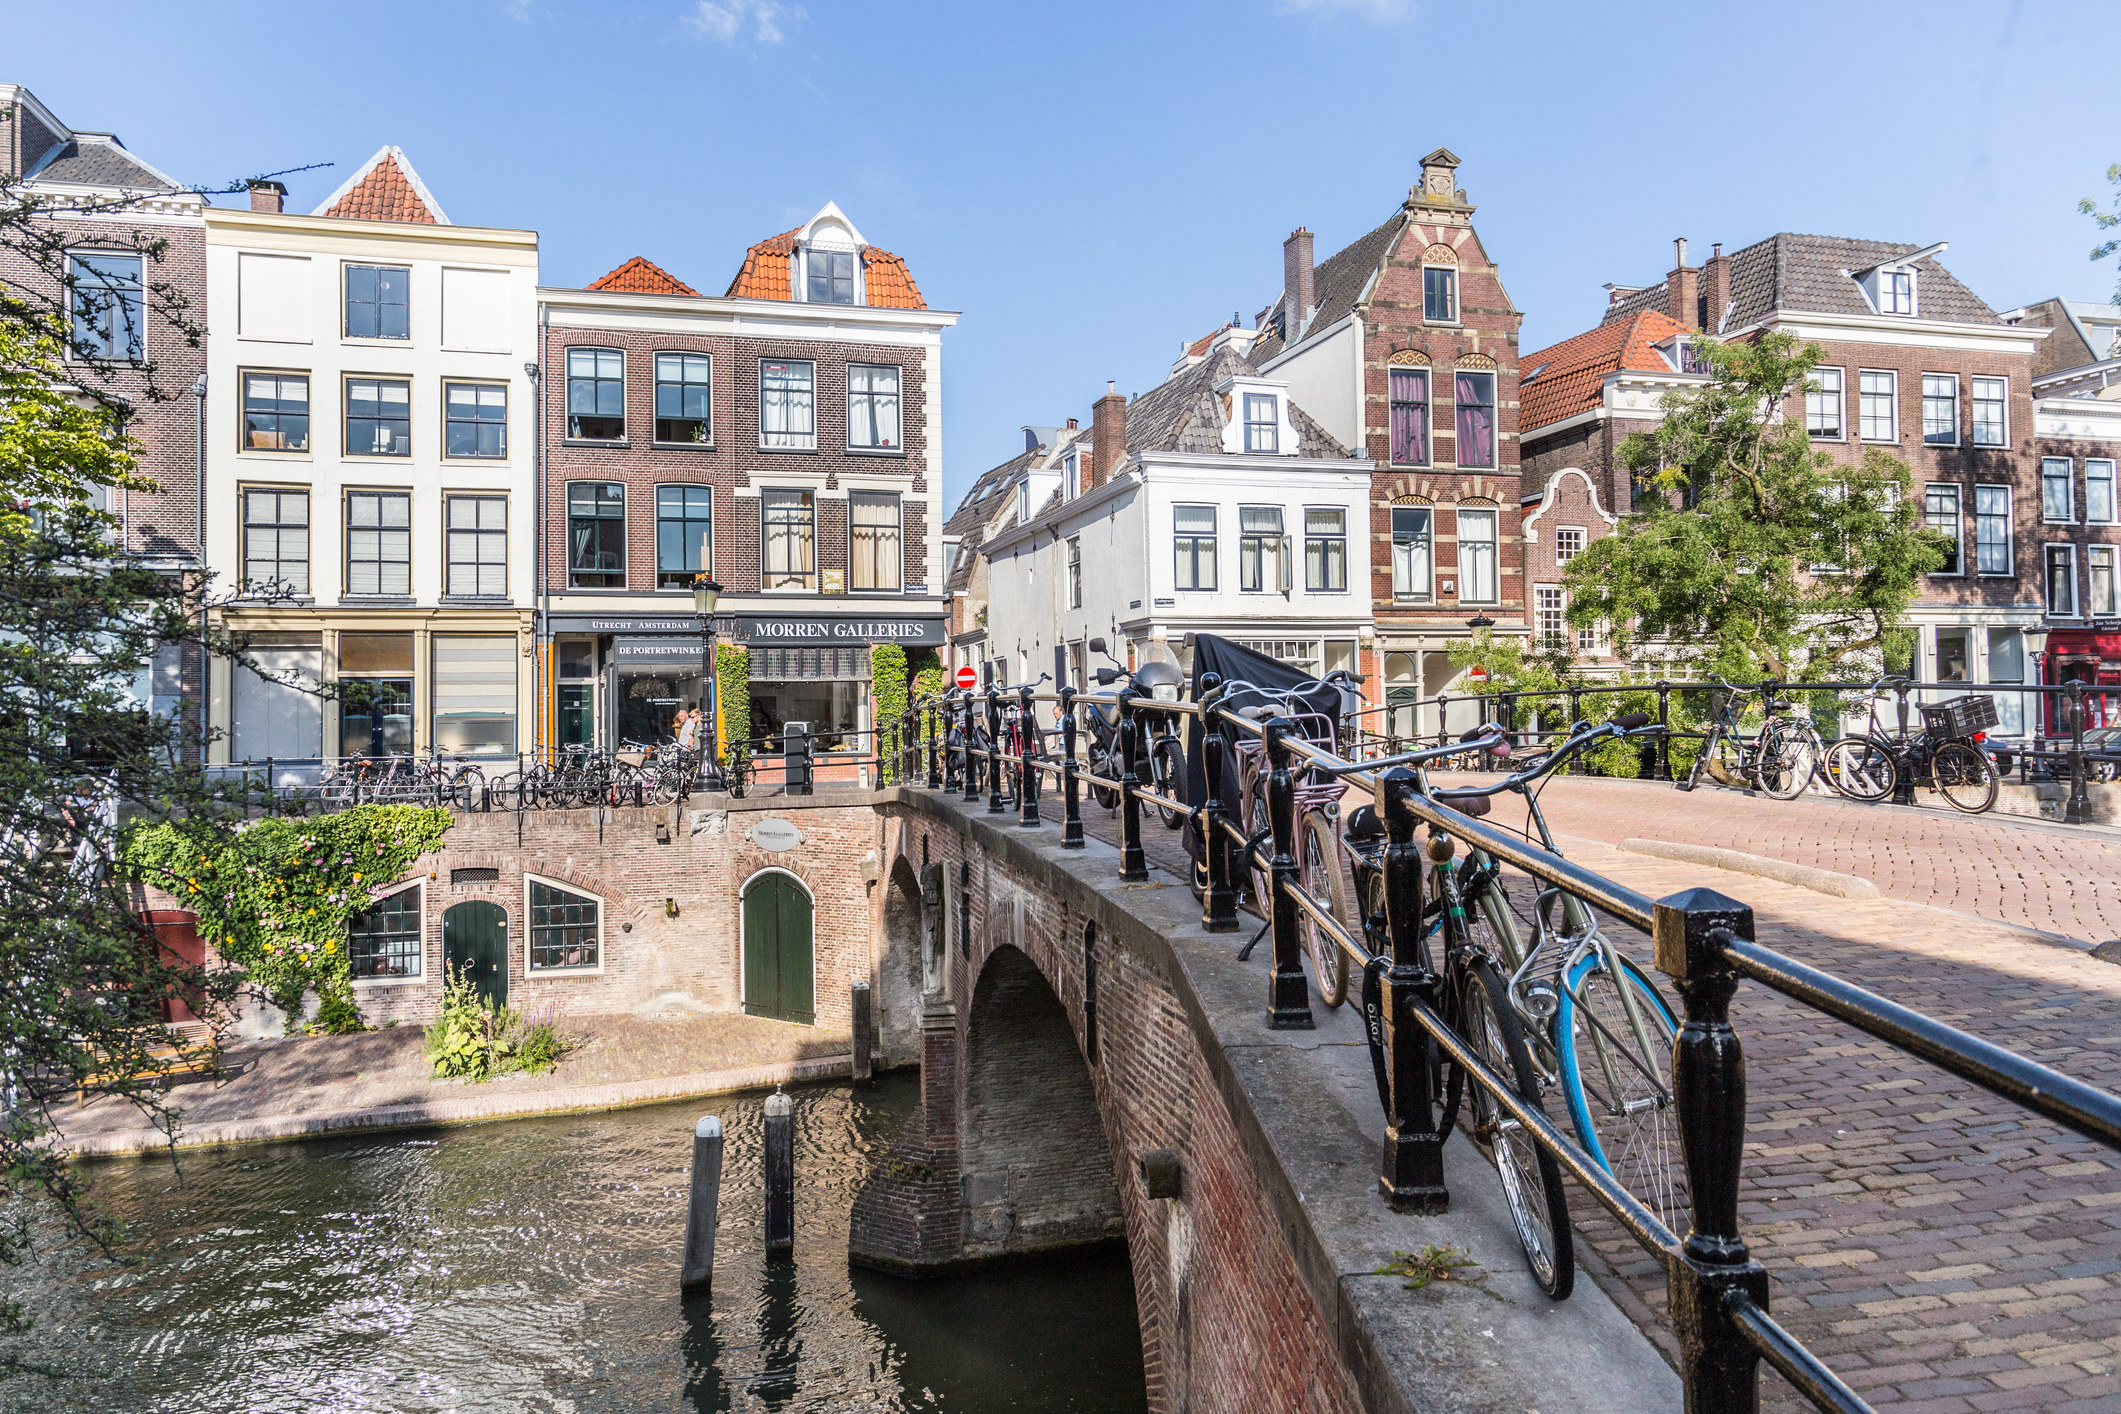 A bridge along a canals surrounded by narrow buildings in Utrecht.